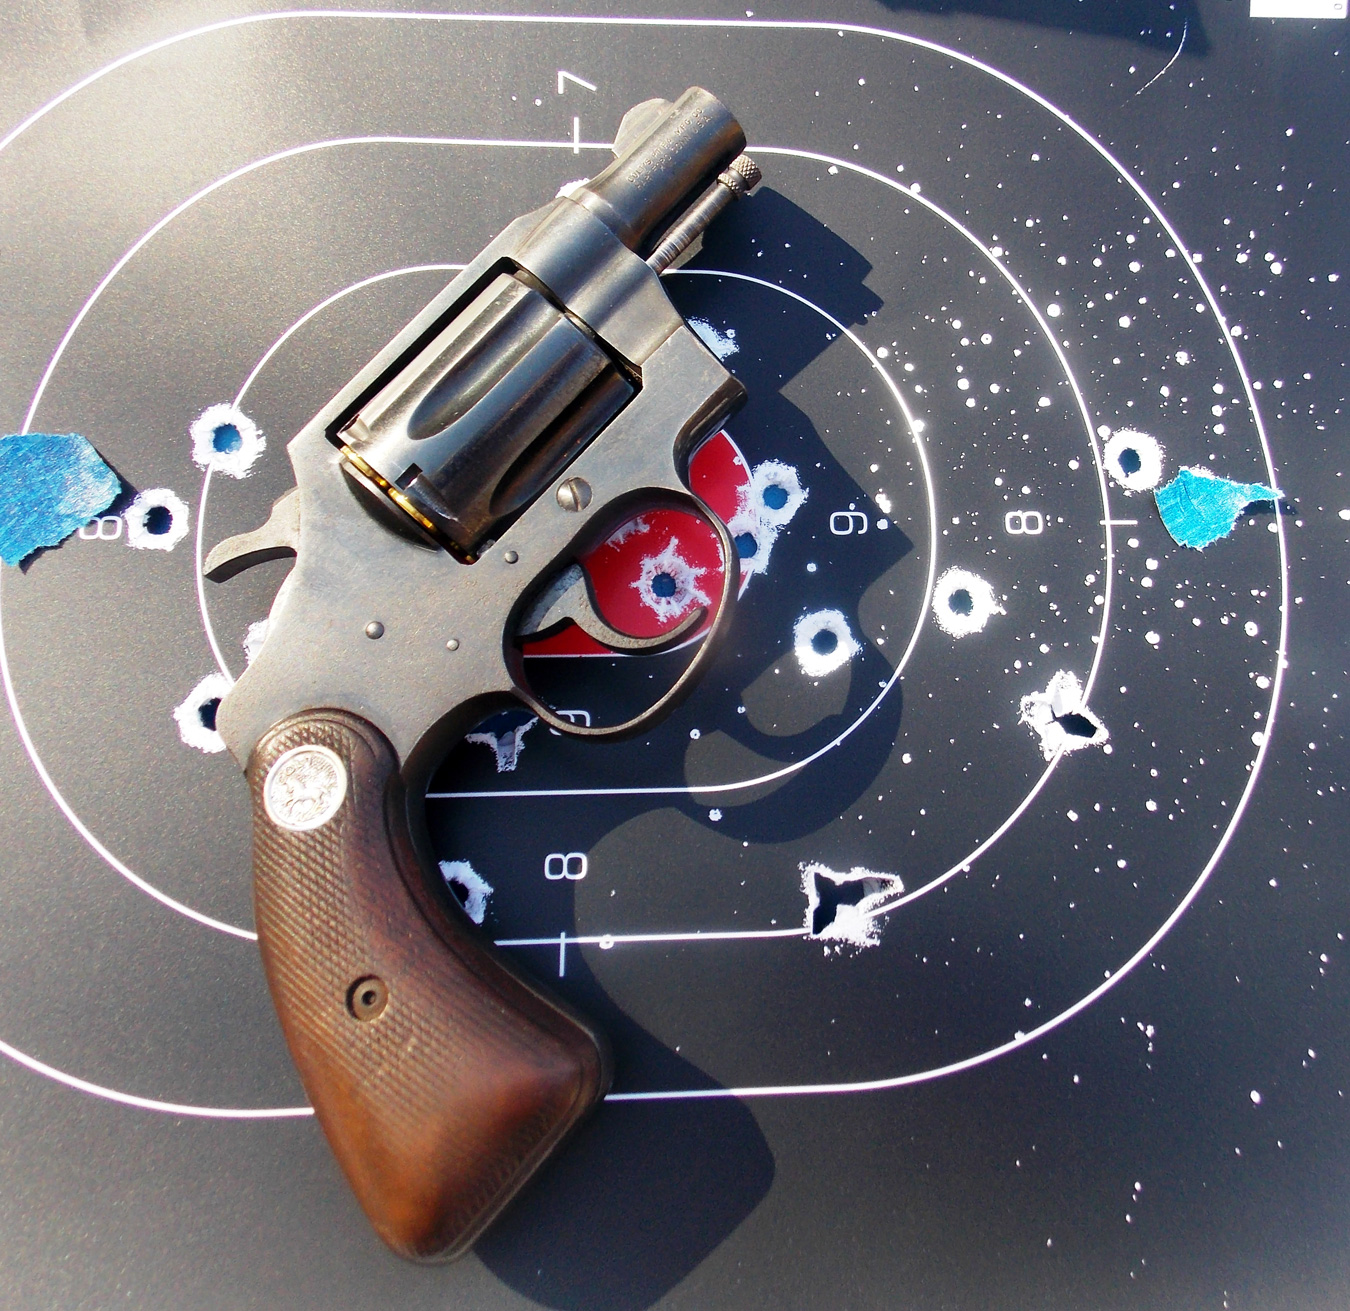 Revolver on top of a target with bullet holes